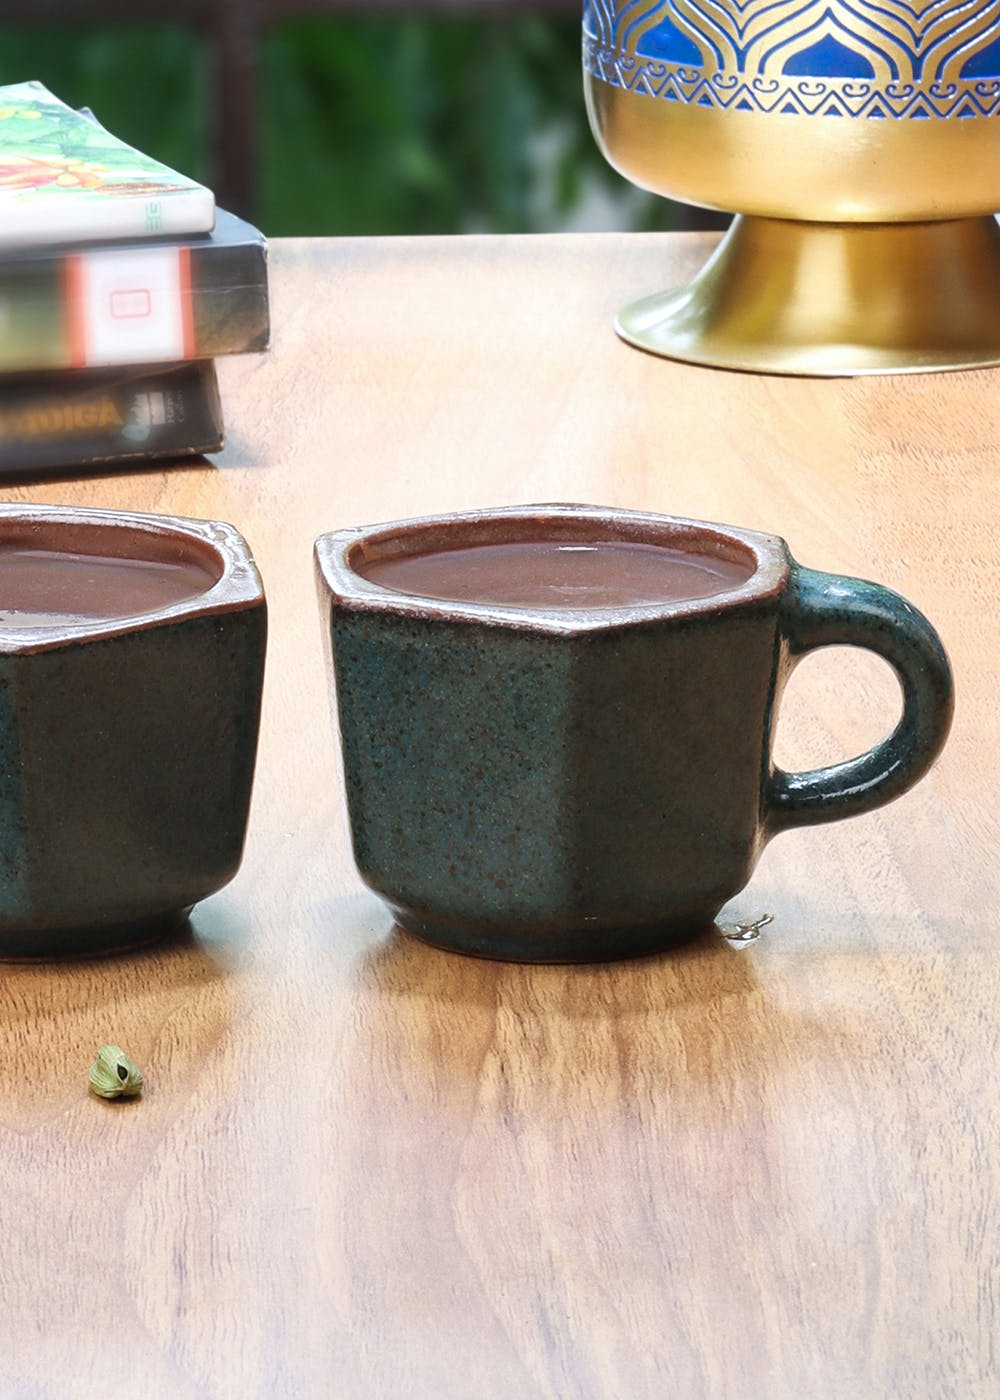 Studio Pottery Bottle Green Hexagon Shaped Cups From Pondicherry